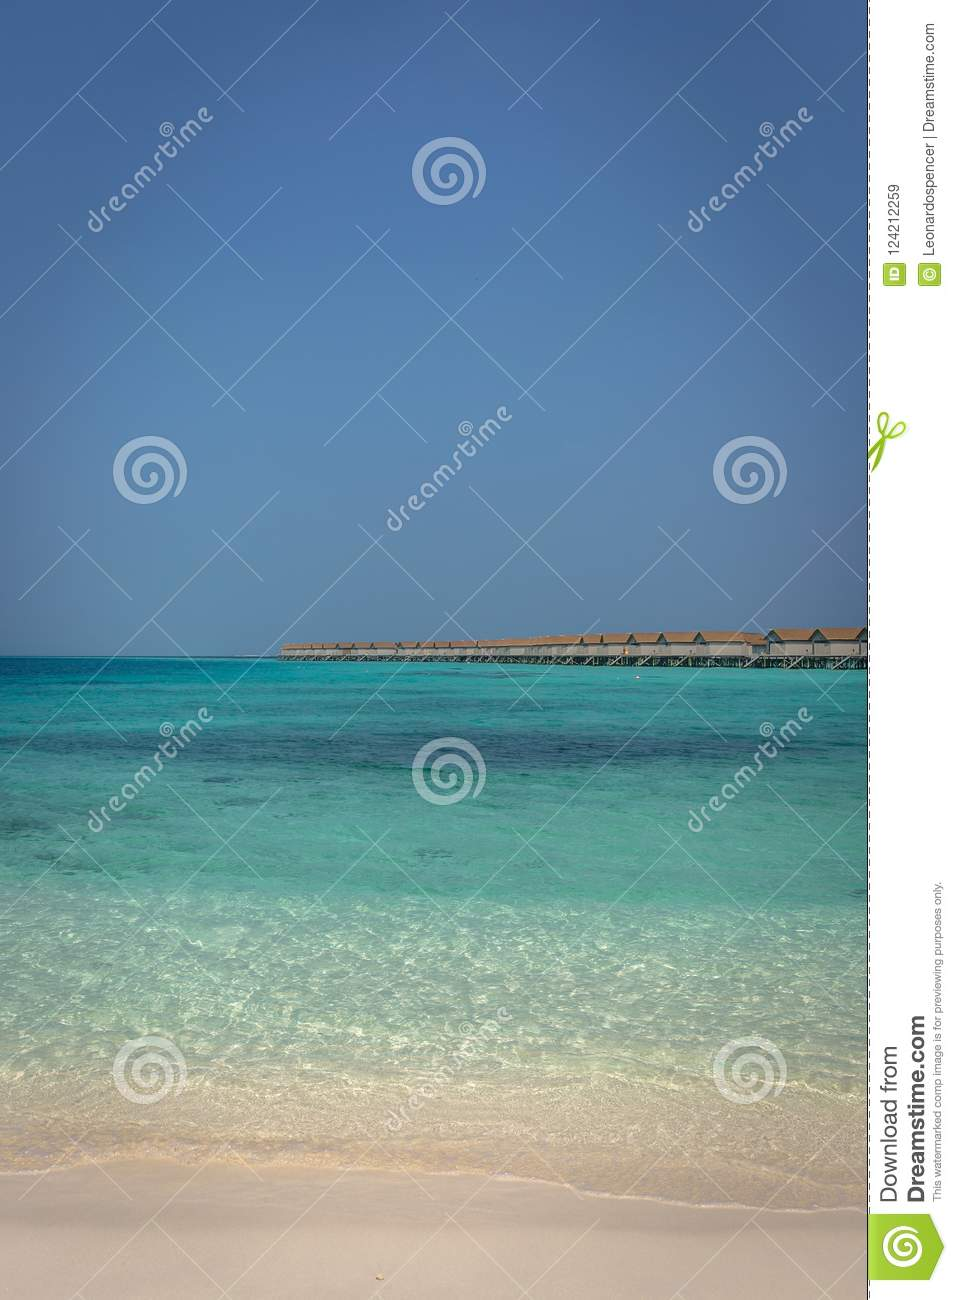 Beautiful blue water beach in a tropical paradise, with bungalows in the background in Maldives